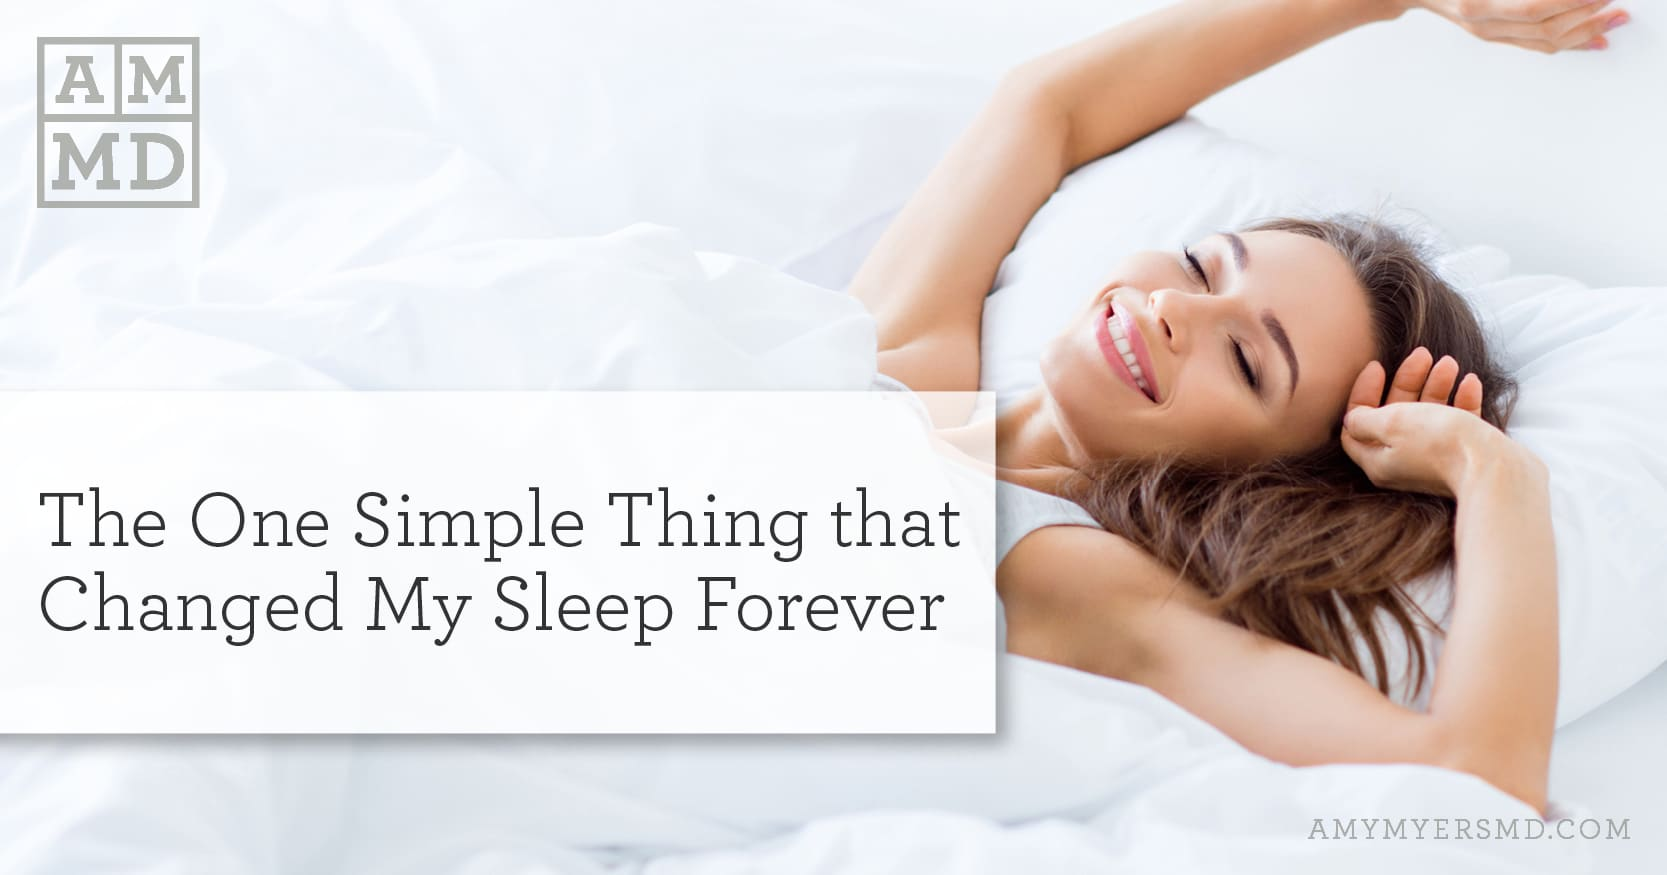 Amber Glasses: One Simple Thing that Changed My Sleep Forever - Woman enjoying sleep - Amy Myers MD